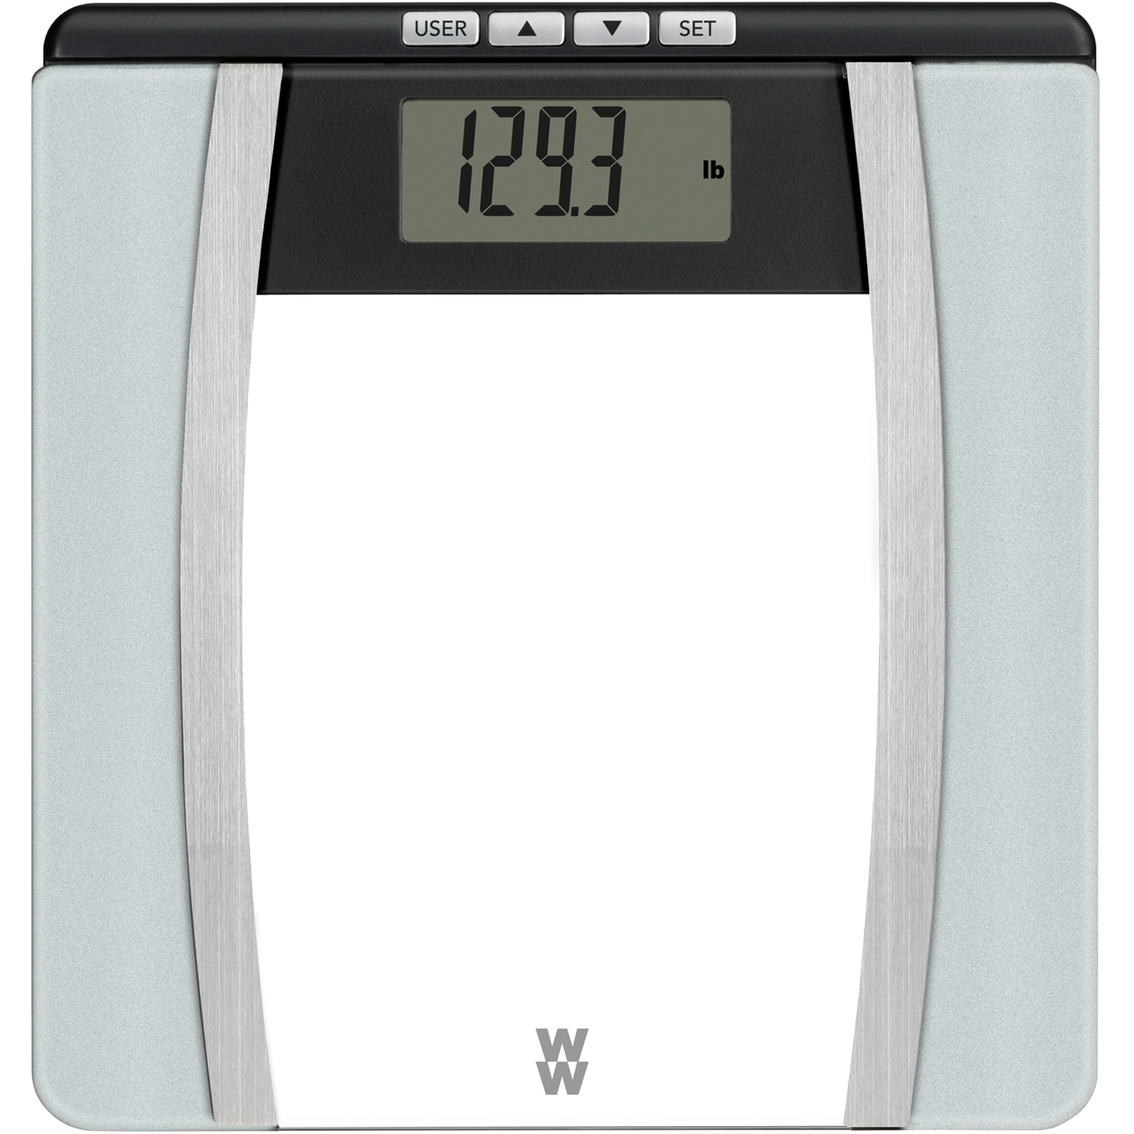 conair weight watchers glass body analysis scale monitoring testing sports outdoors. Black Bedroom Furniture Sets. Home Design Ideas